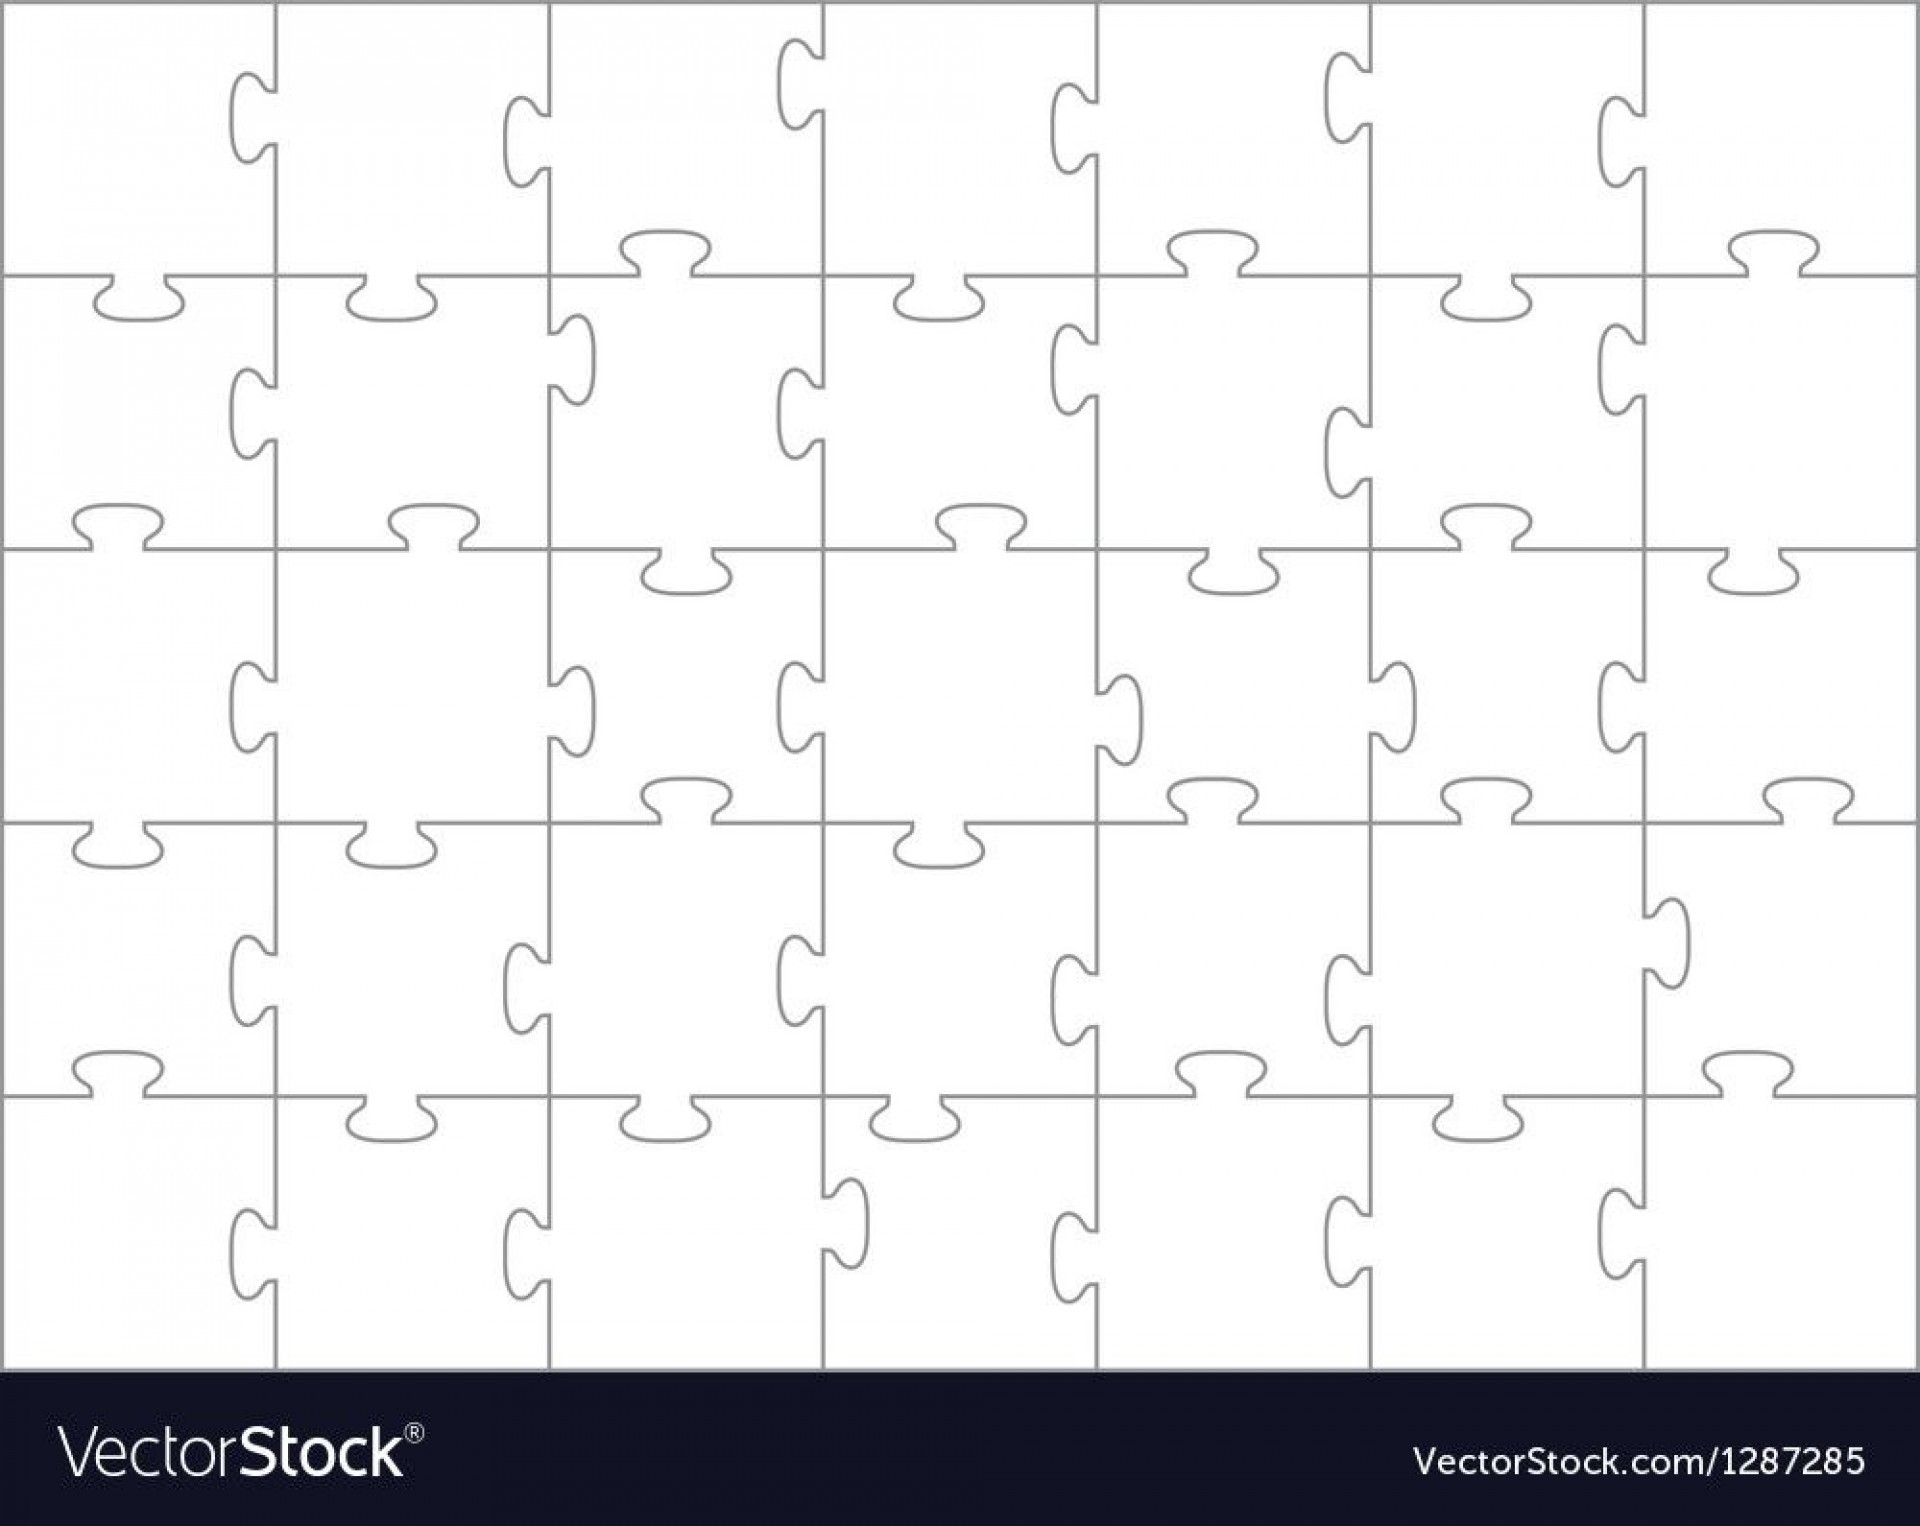 008 Dreaded Jig Saw Puzzle Template High Definition  Printable Blank Jigsaw Vector Free Png1920